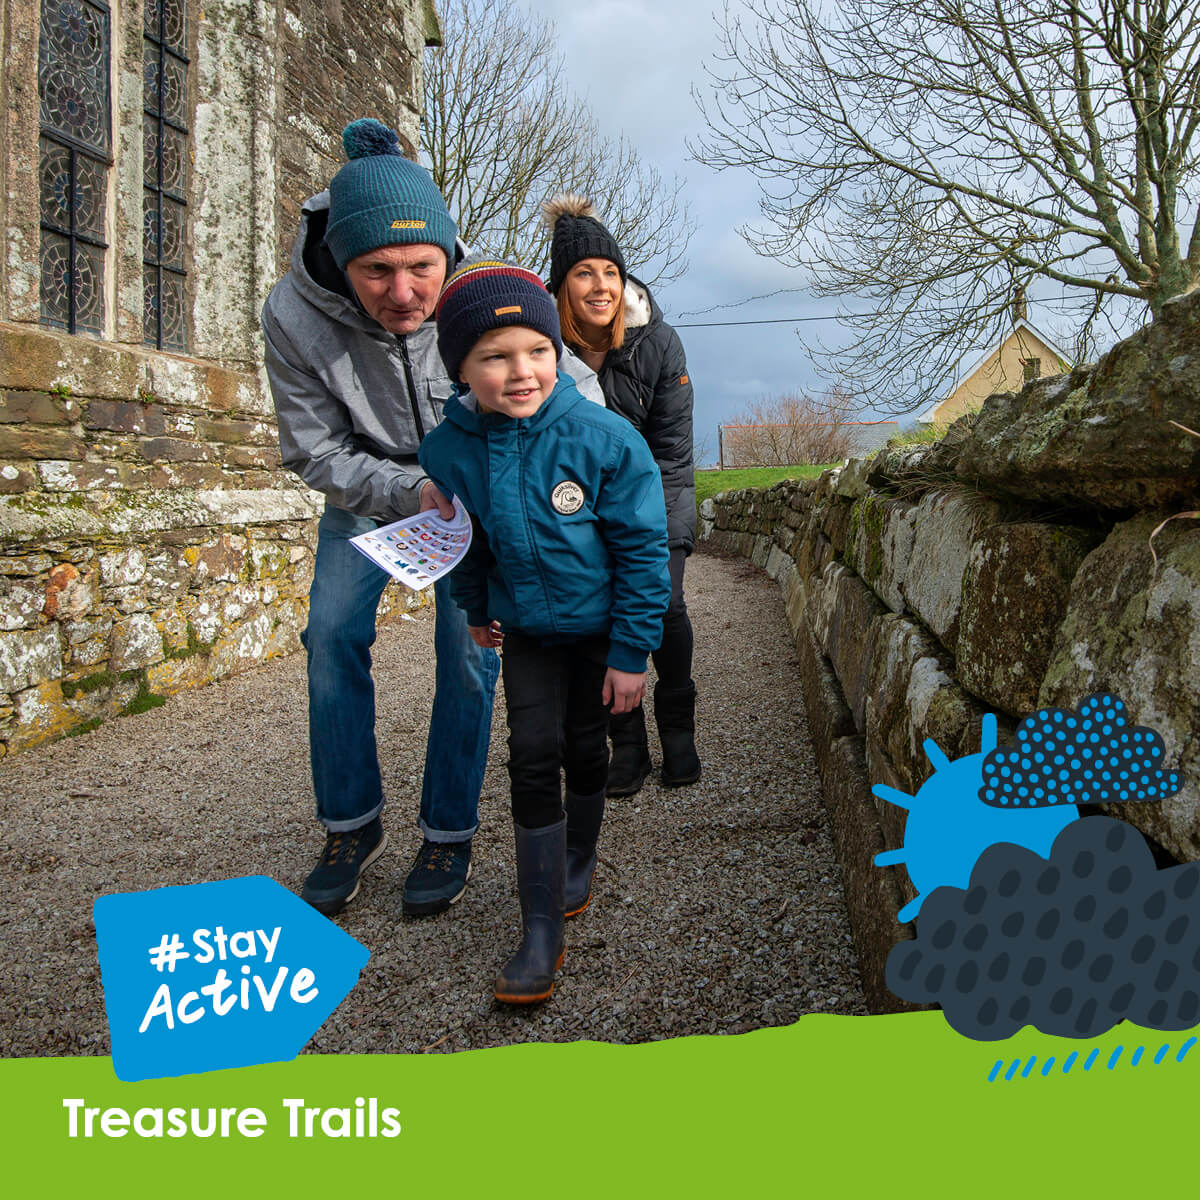 Stay Active with Treasure Trails